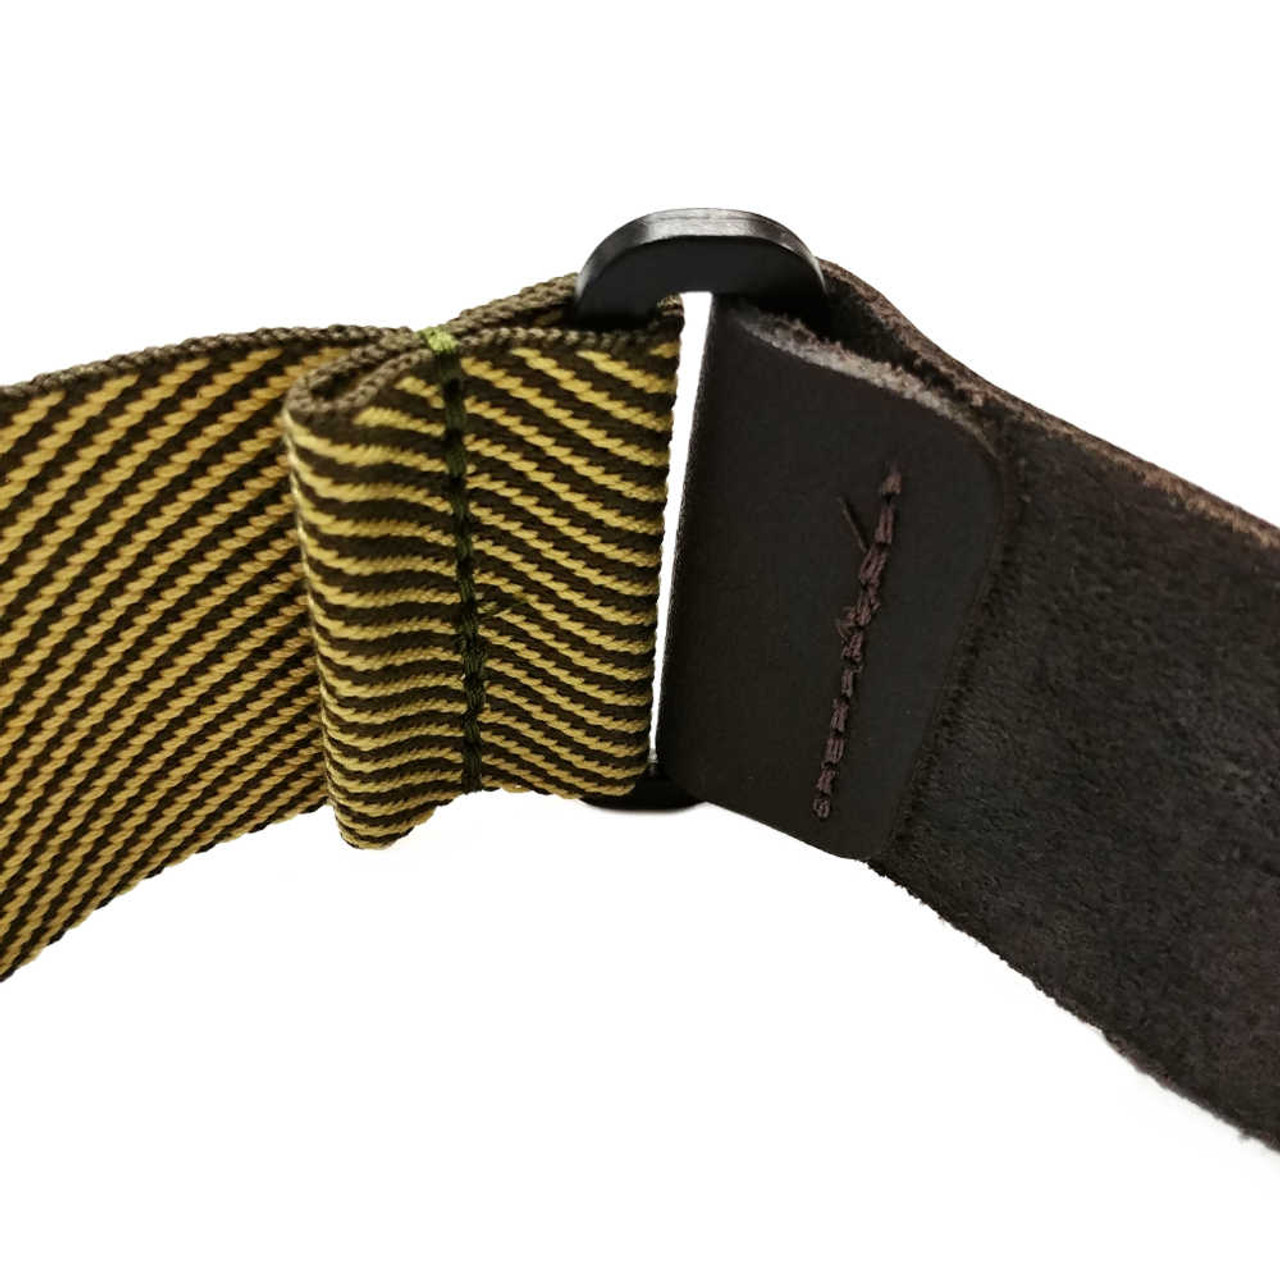 "2"" Cotton Strap /w Leather Ends - Tweed"